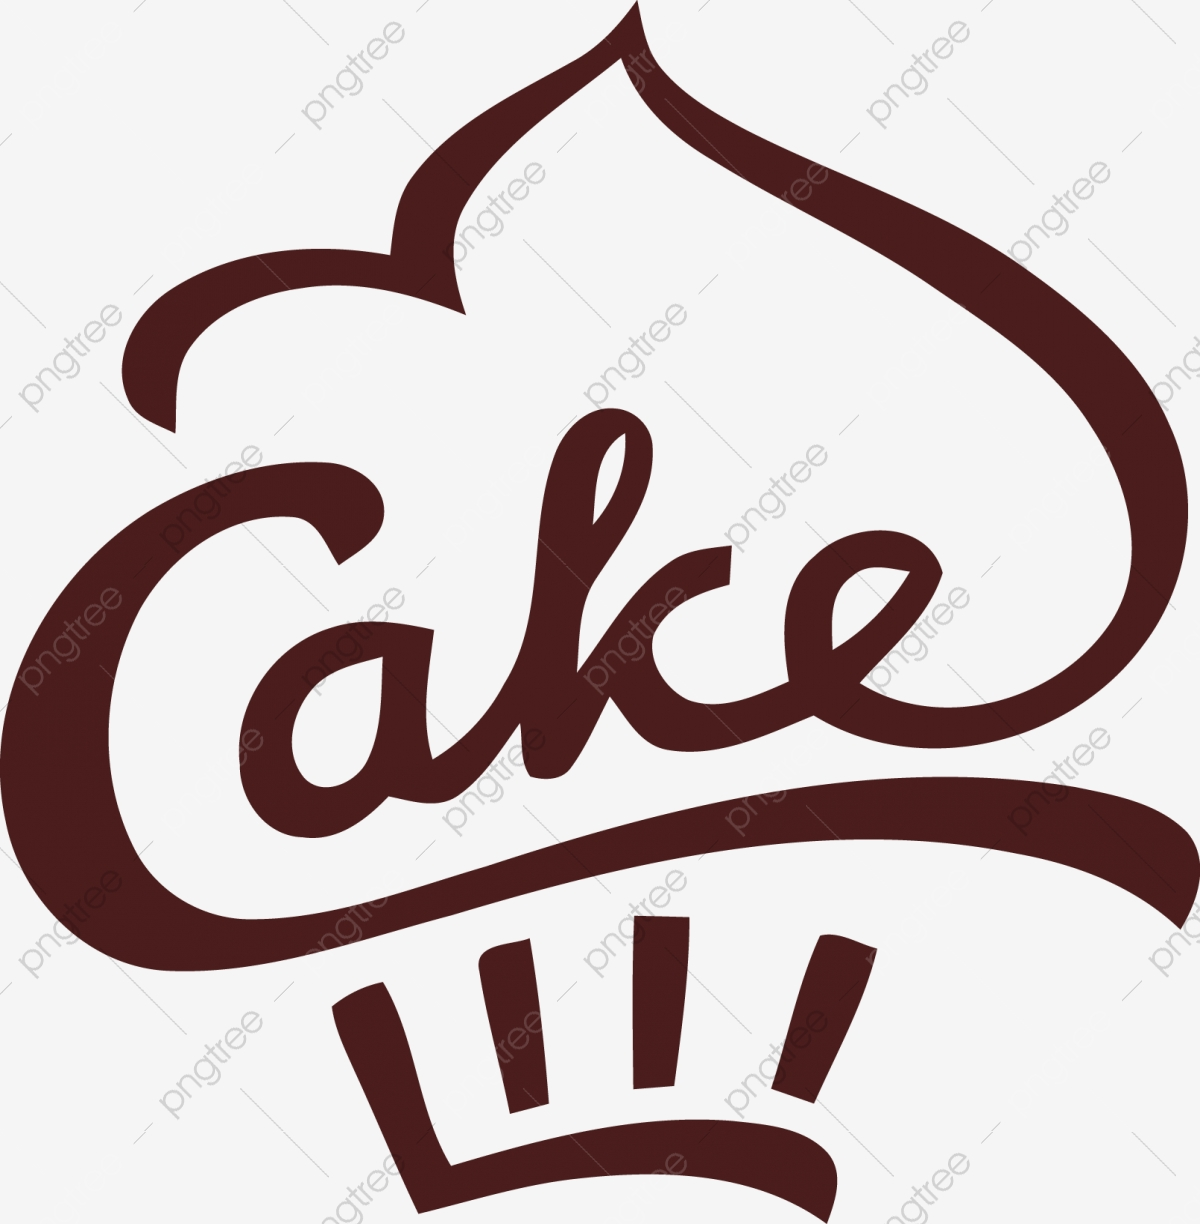 Simple Hand Painted Cake, Pastry, Cake, Bread PNG and Vector.